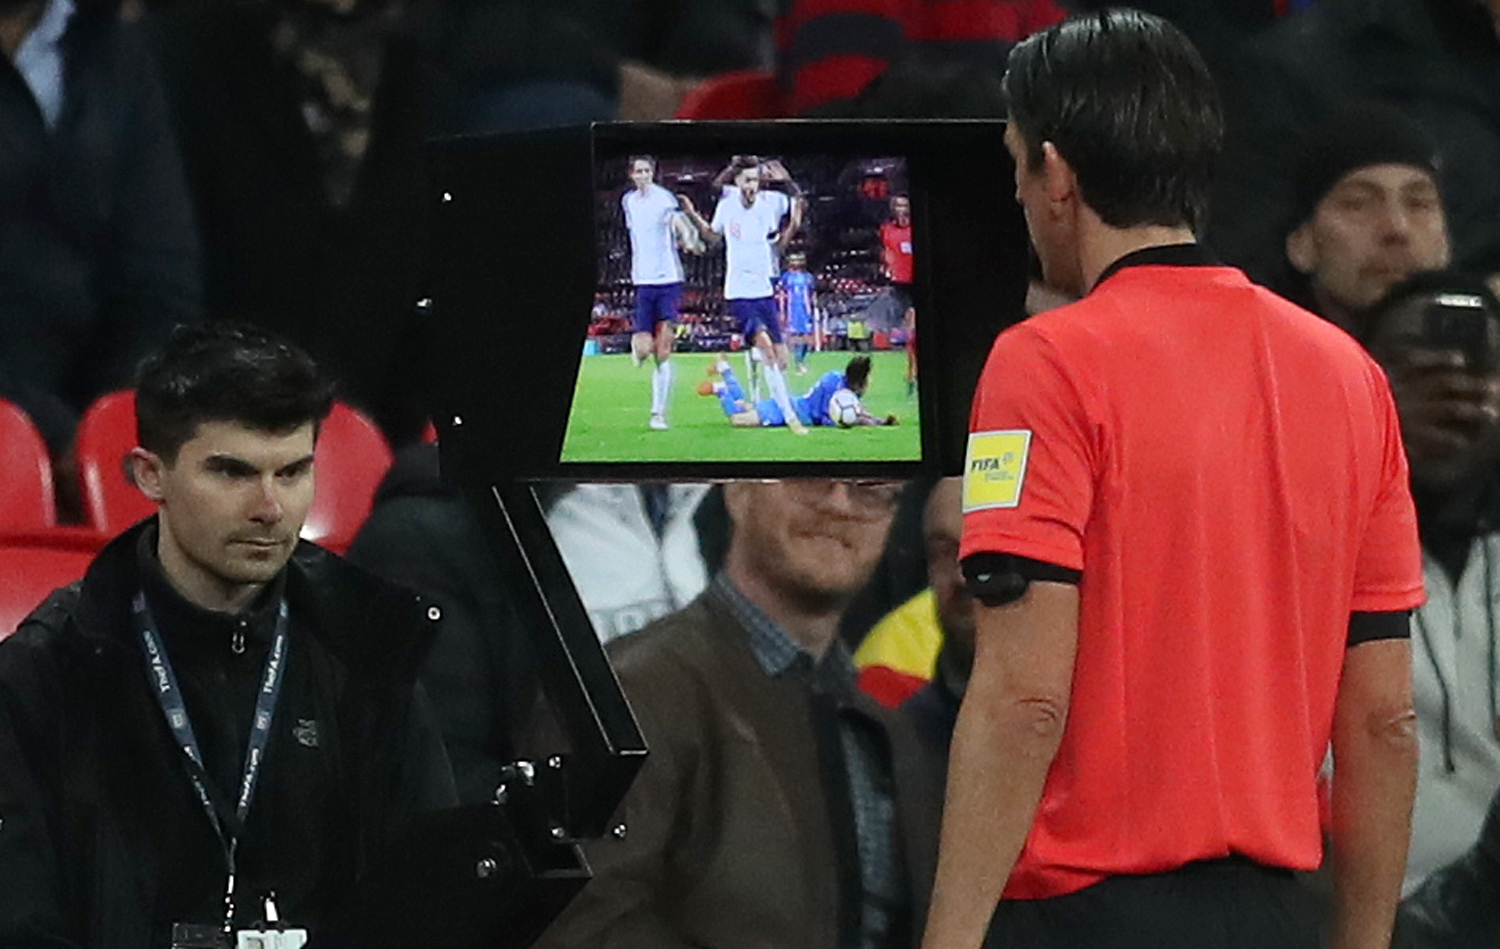 VAR technology will NOT be used in the Premier League next season - Oxford MailVAR technology will NOT be used in the Premier League next season - 웹